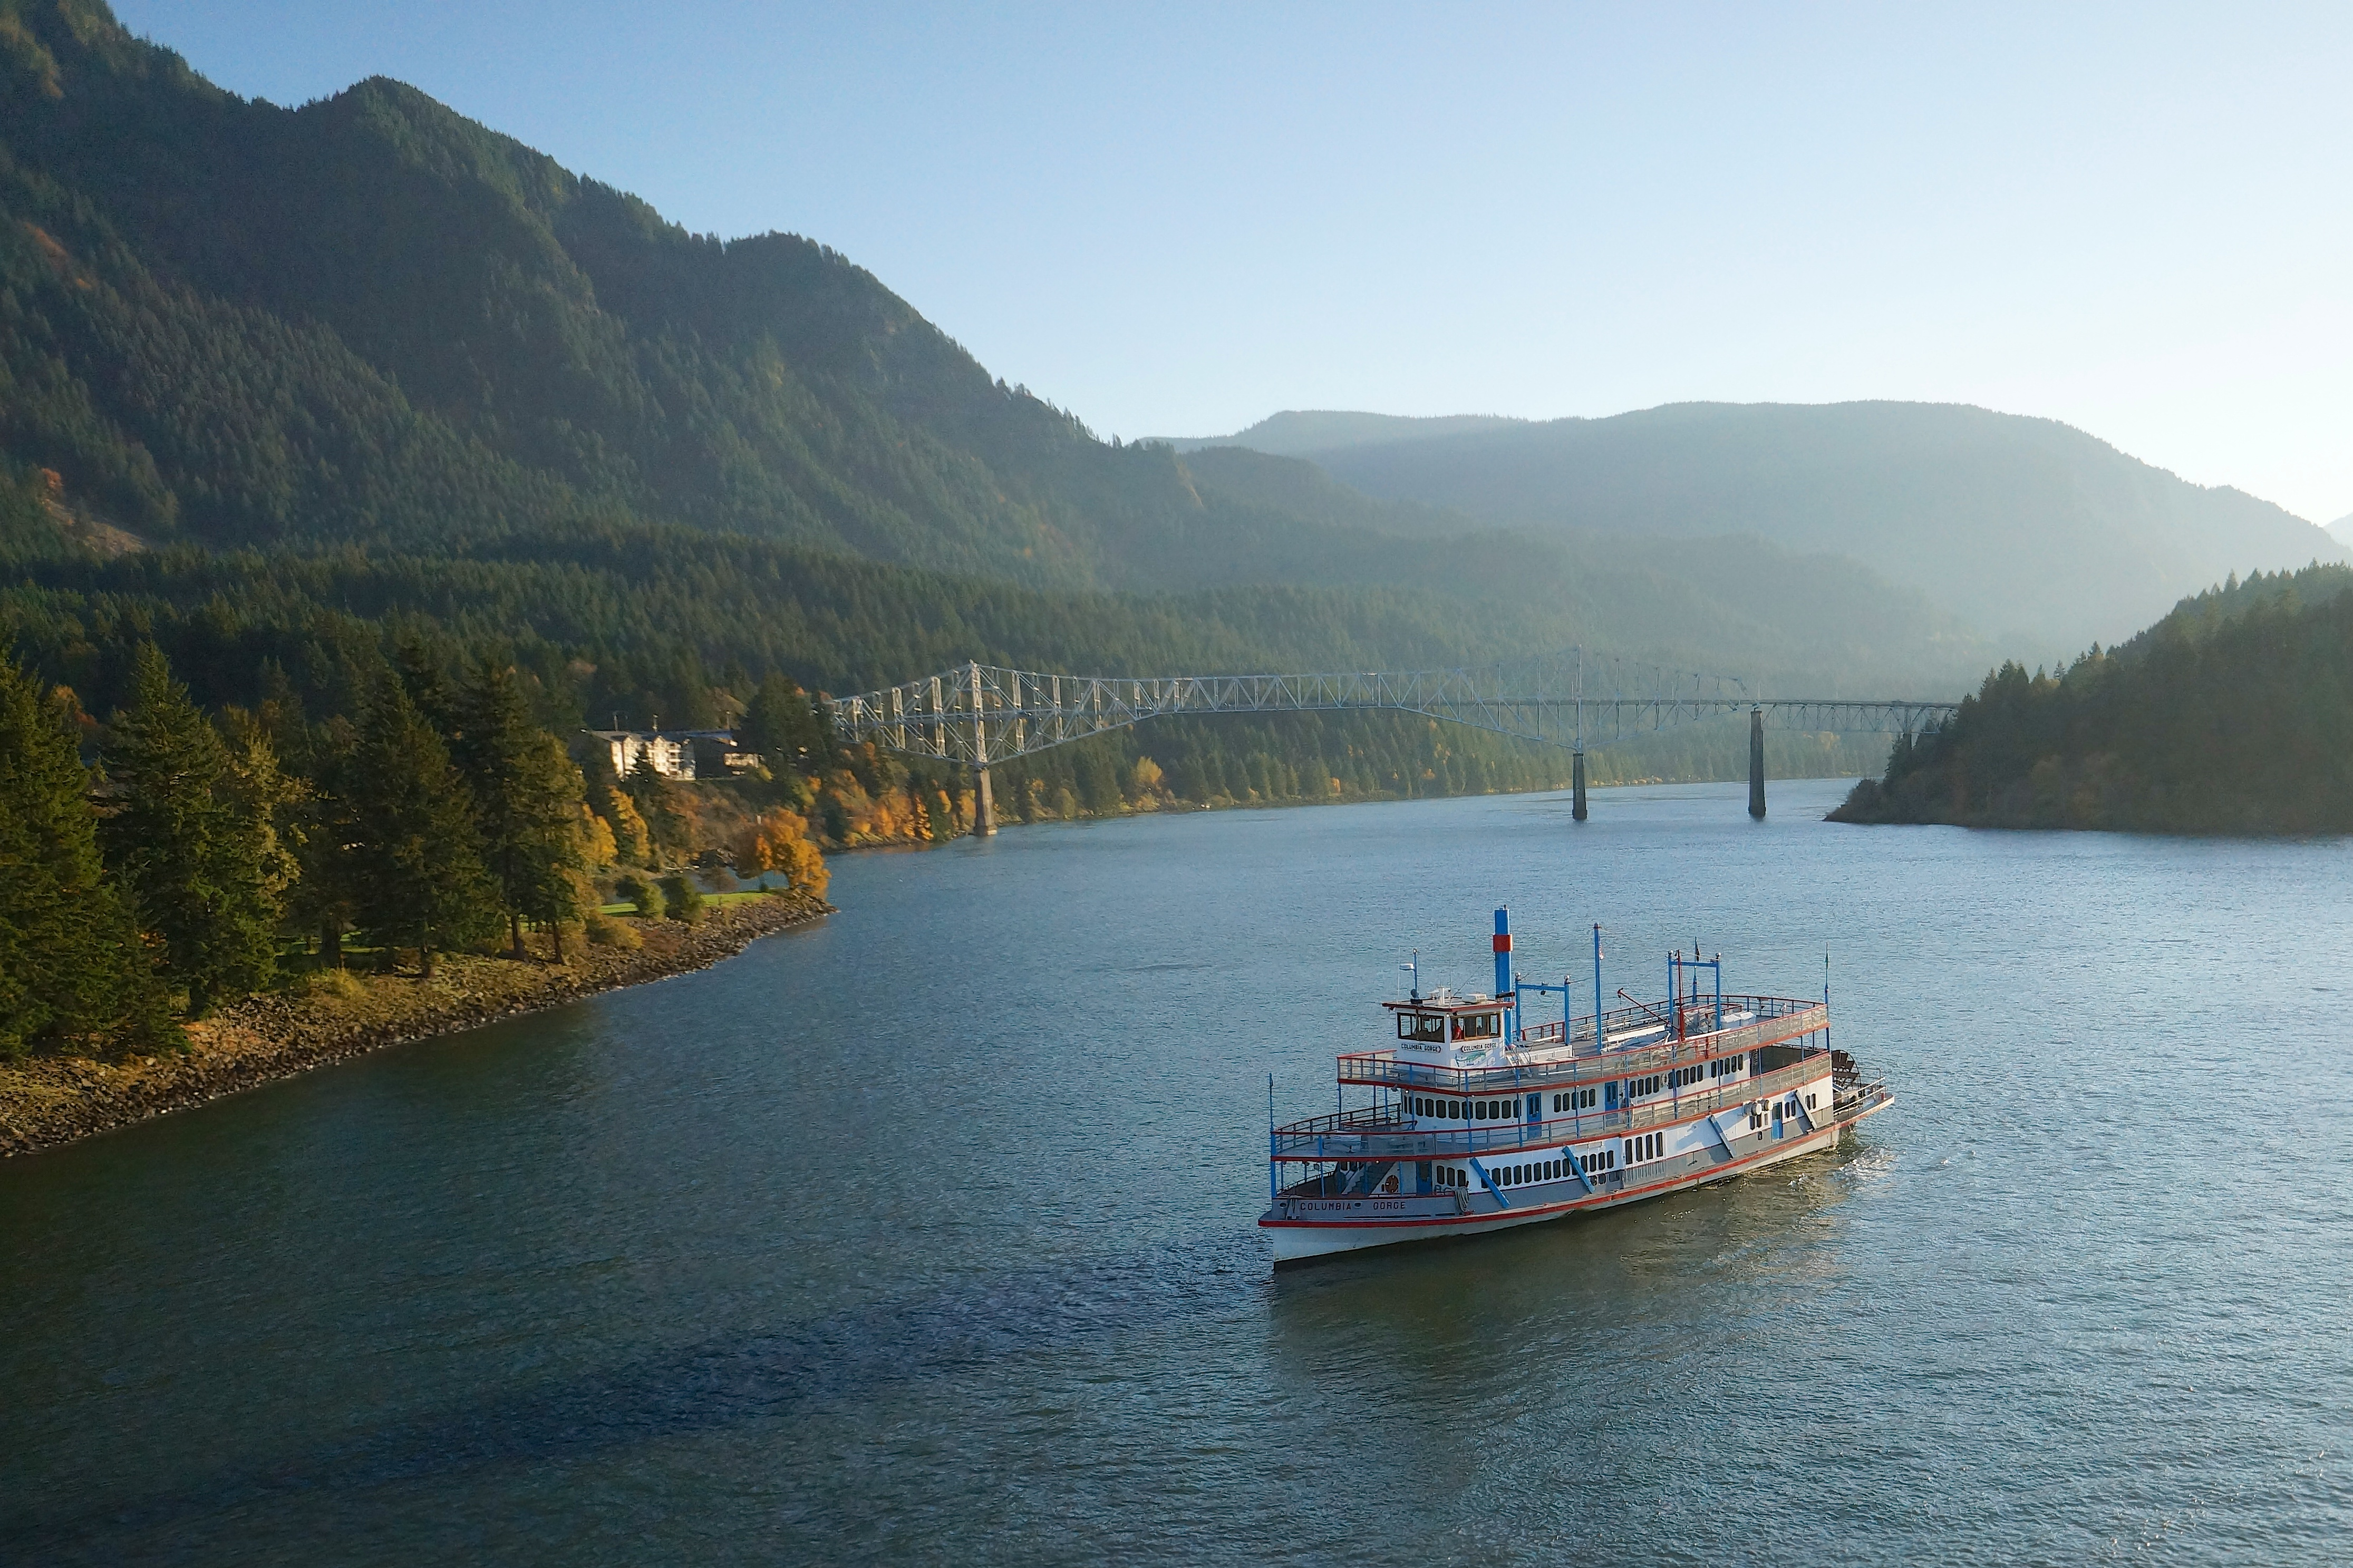 Columbia Gorge Sternwheeler and Locks Grill image 0